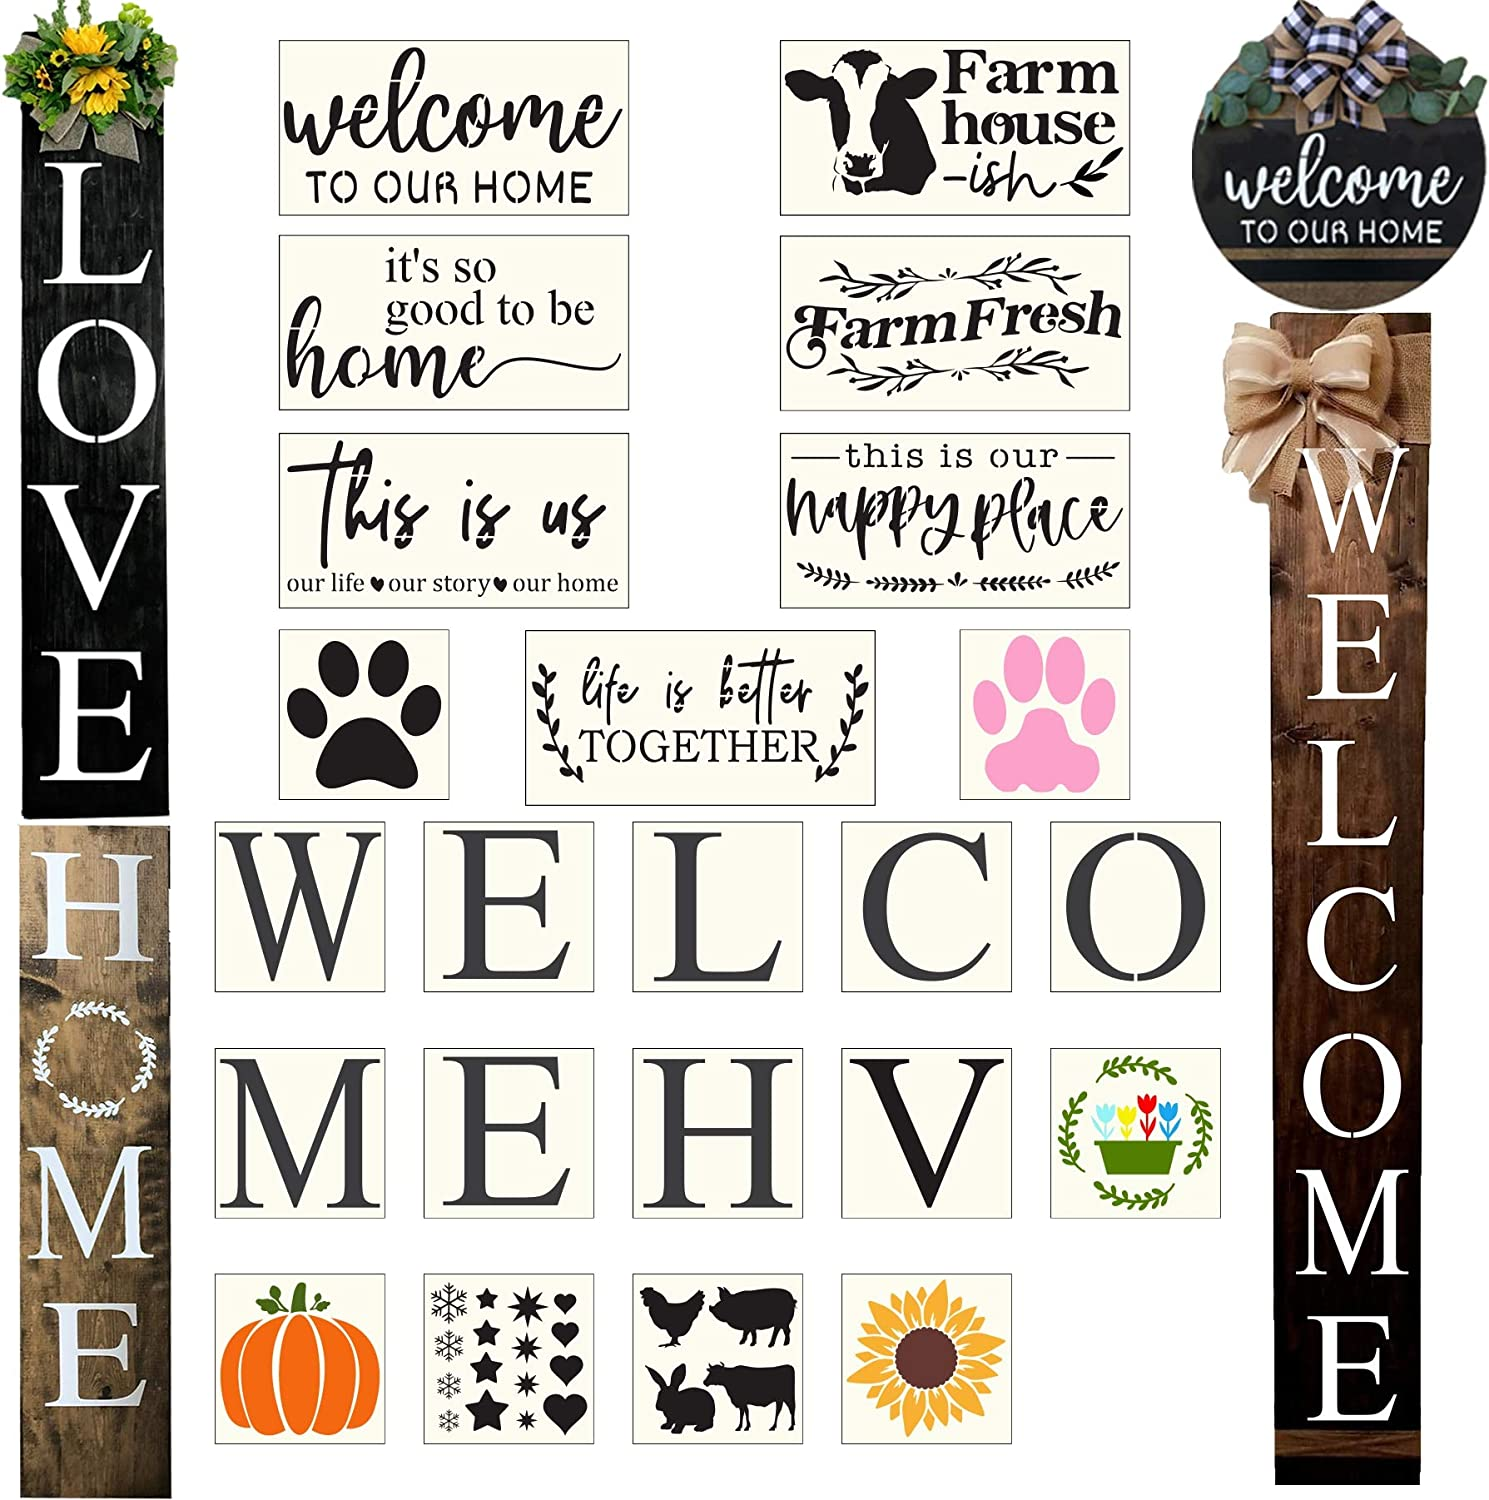 23PCS Large Letter Welcome Stencils for Painting On Wood Reusable Farmhouse Signs Stencils for Wood-Cursive Letter Stencils-Sunflower Stencil Paw Stencil Word Stencils for Sign